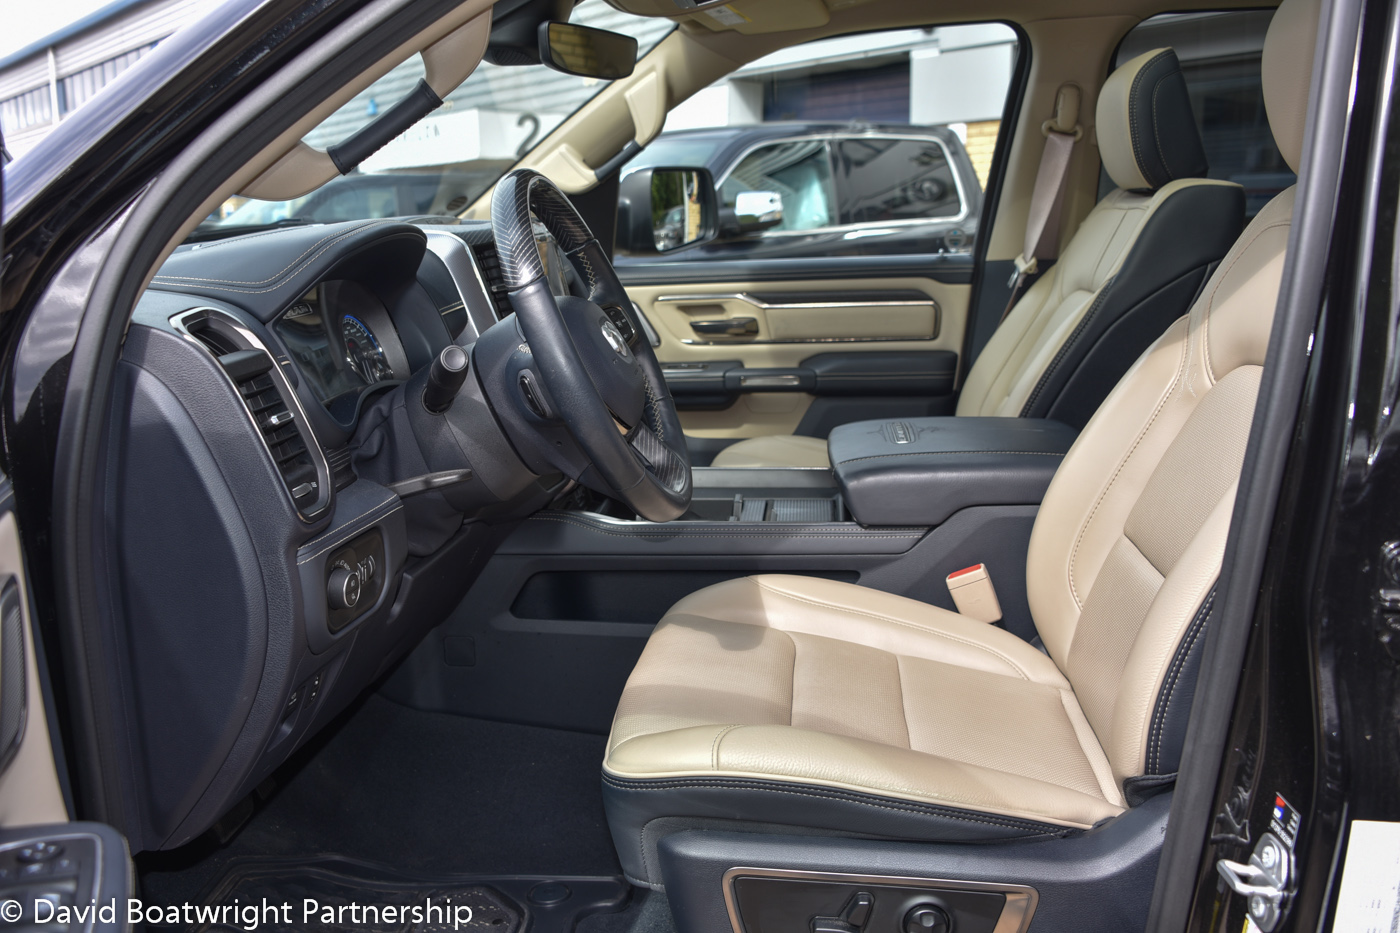 2019 Dodge RAM Limited Light Interior